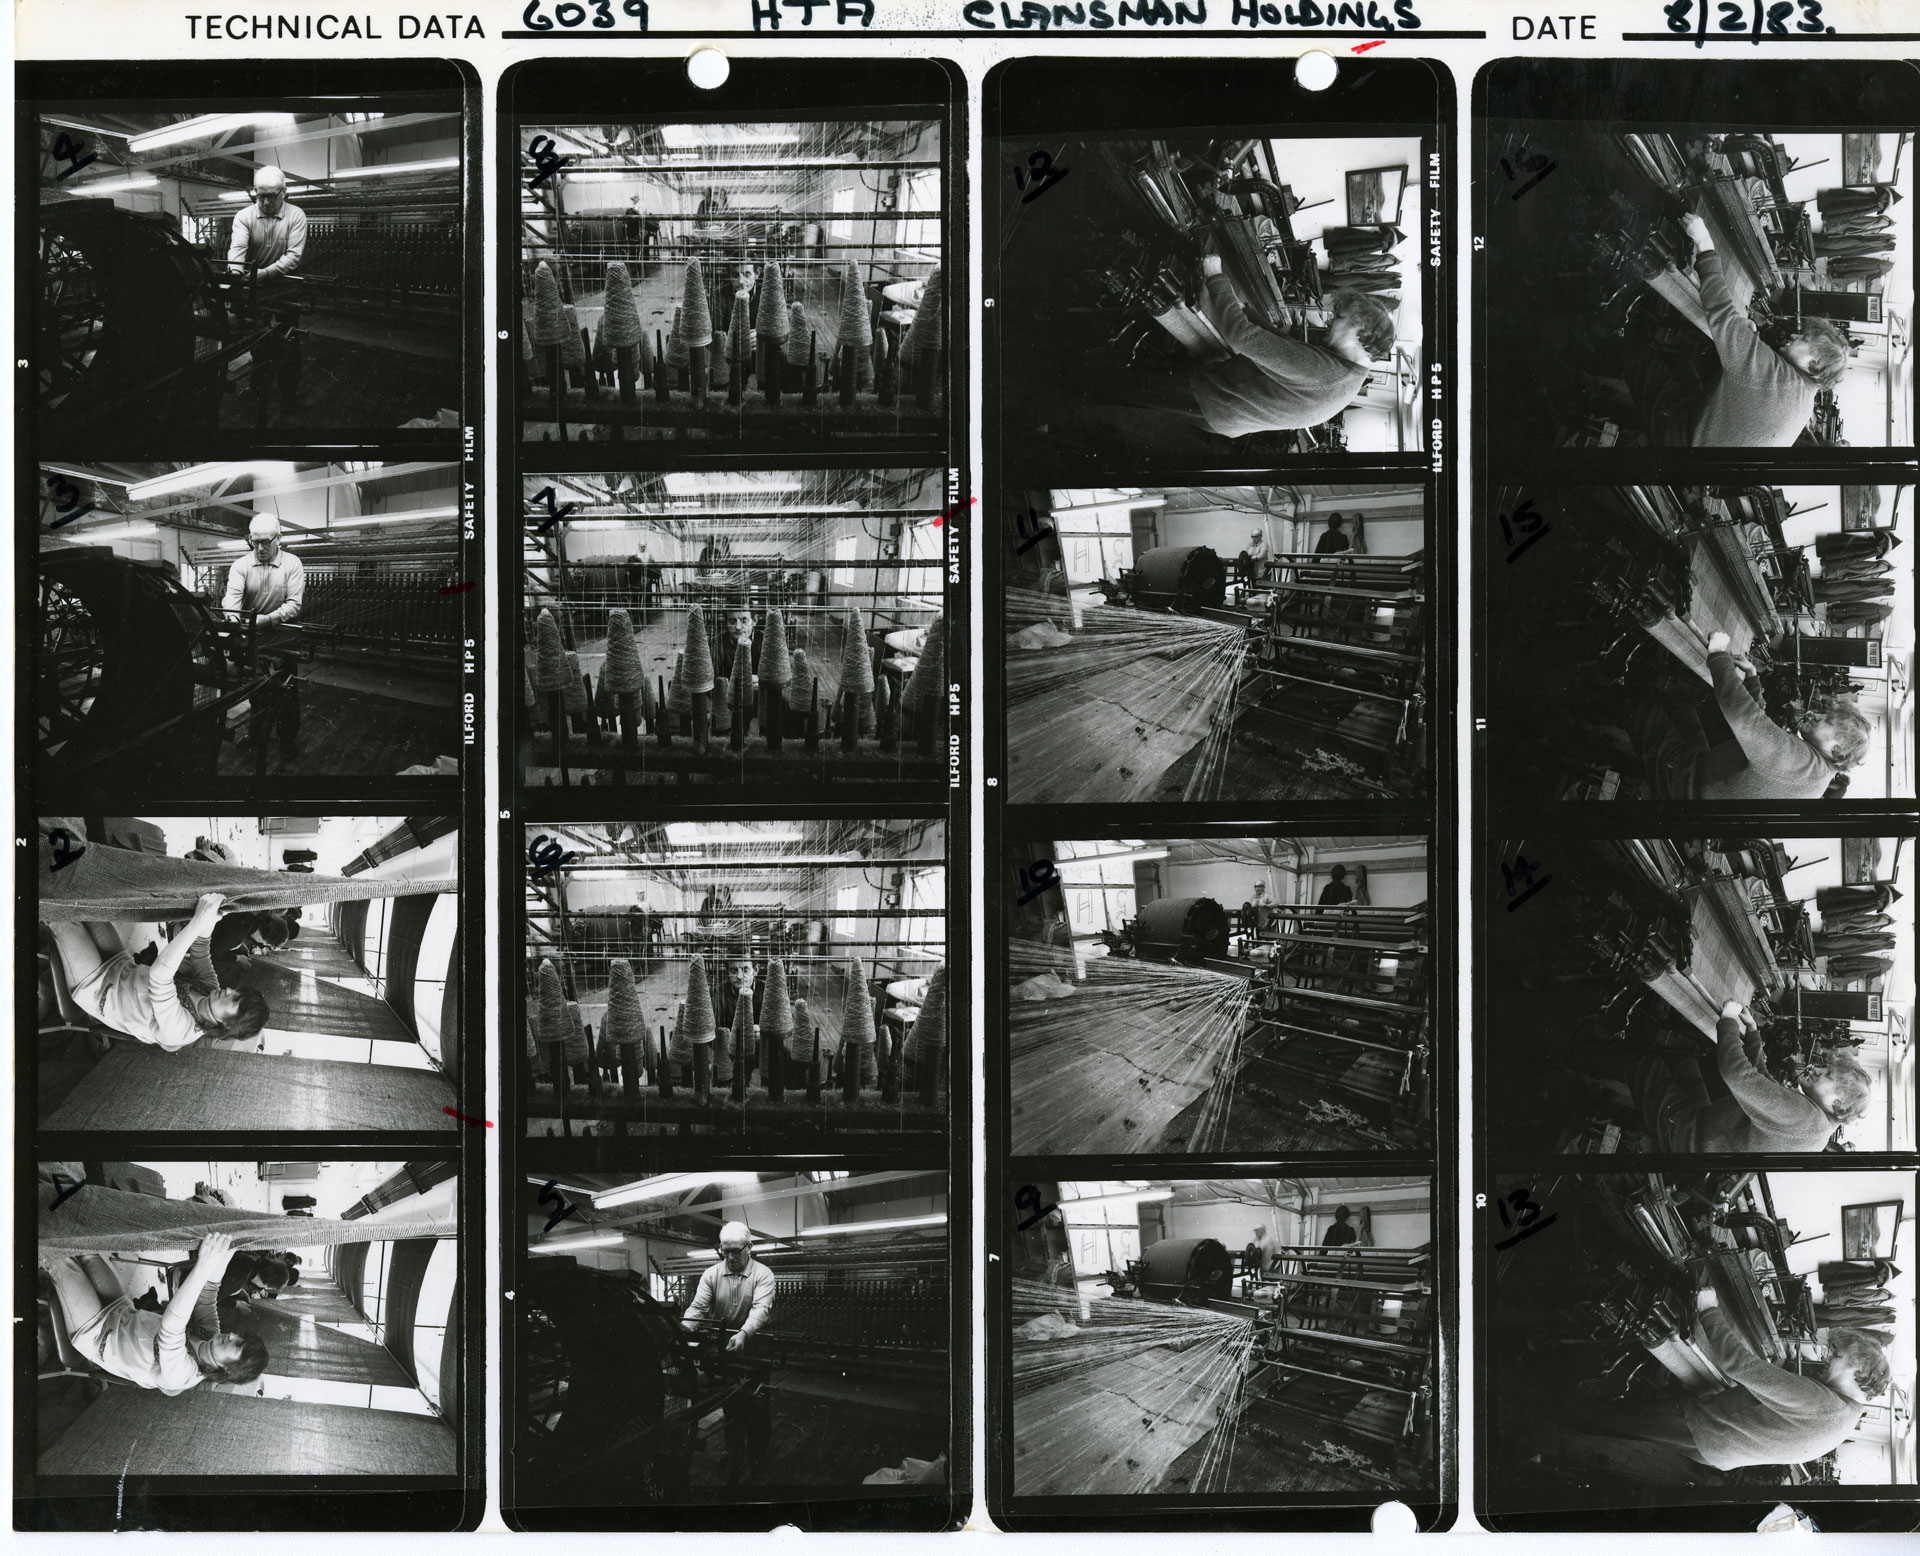 contact sheet of old mill workings